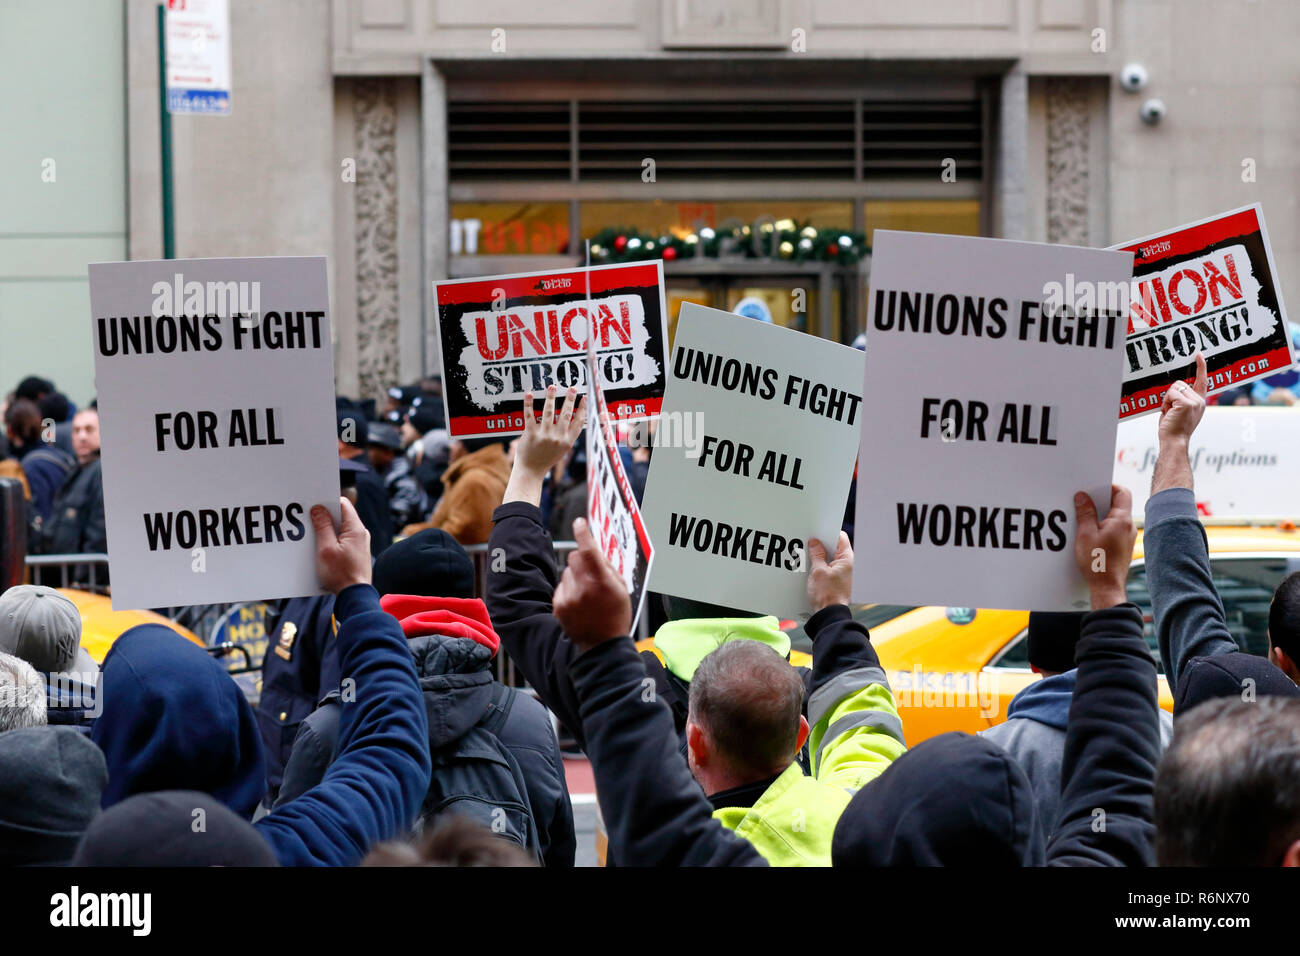 A union labor rally/protest outside Charter Spectrum cable company in New York City - Stock Image